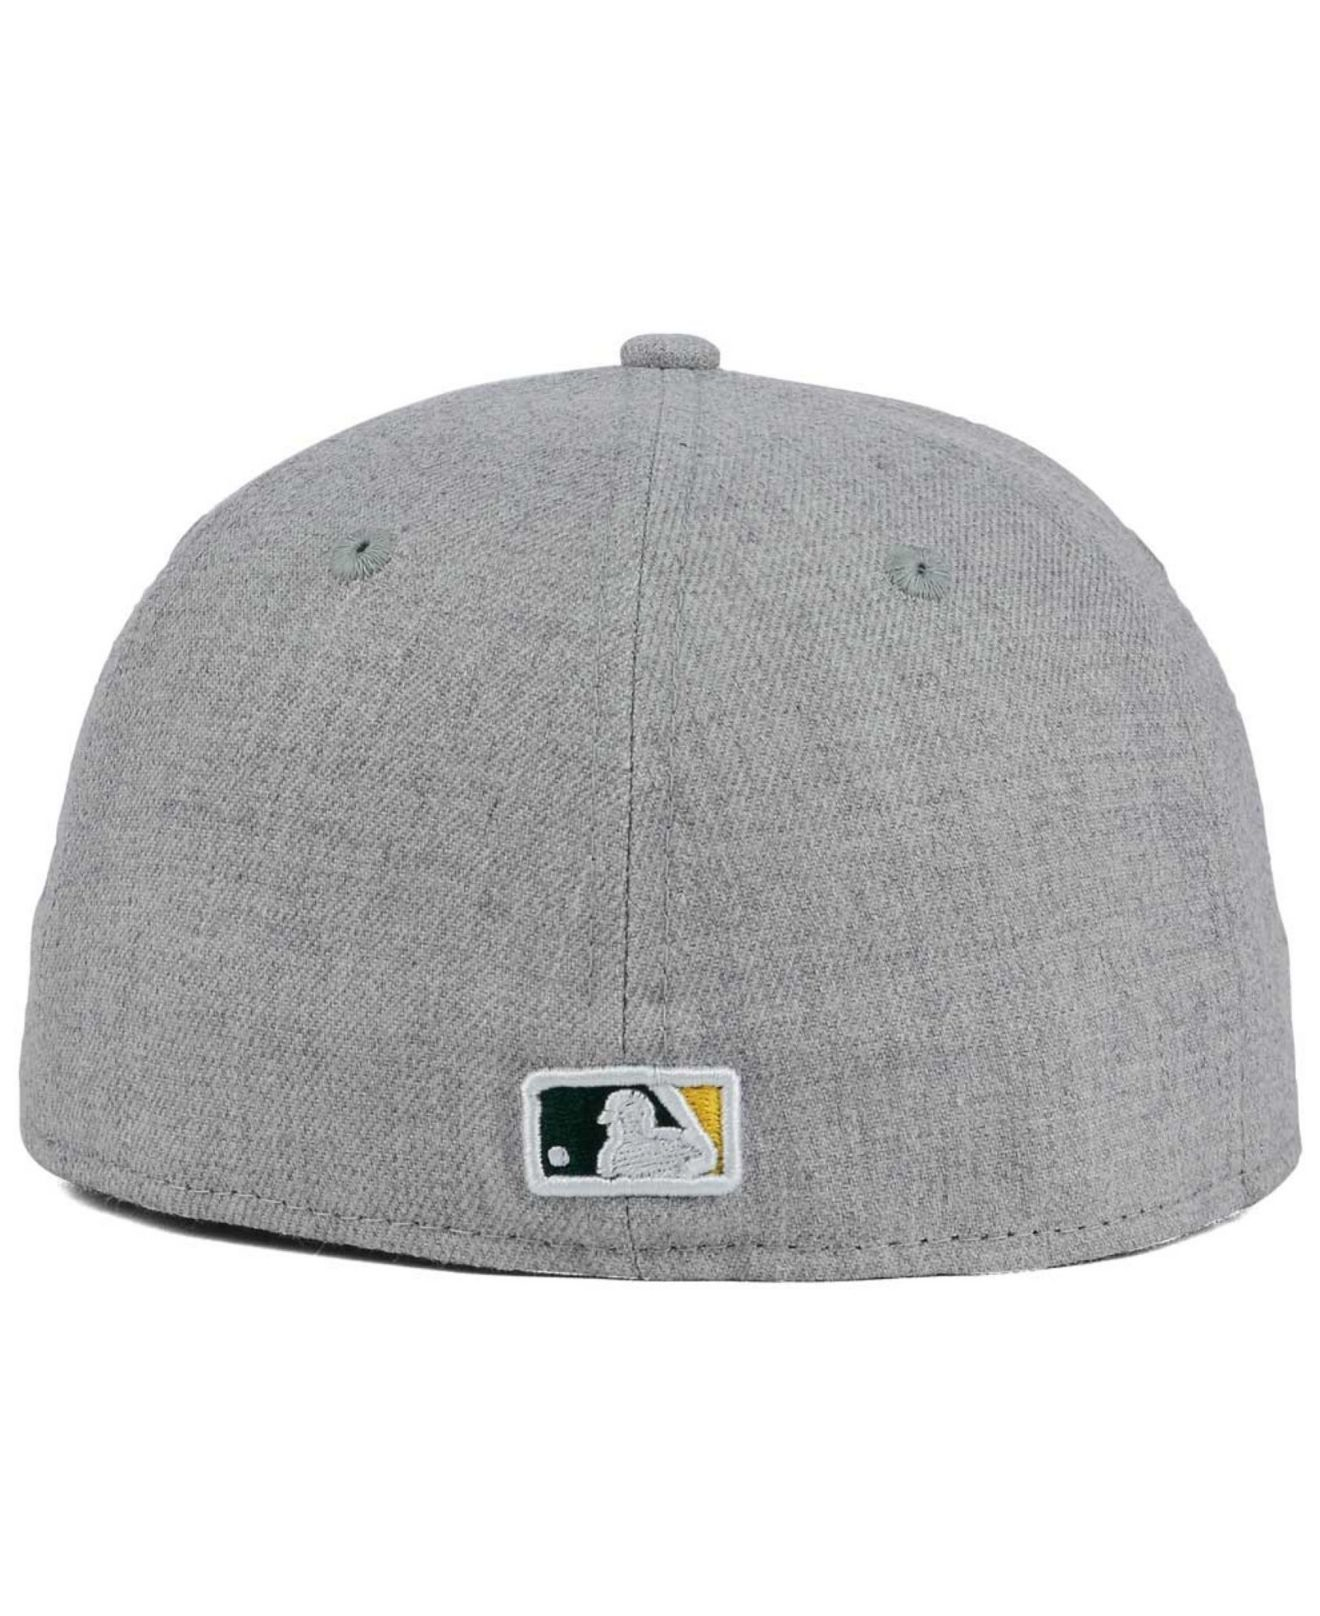 sports shoes 27783 f90a8 Lyst - KTZ Oakland Athletics Heather Team Color 59fifty Cap in Gray ...